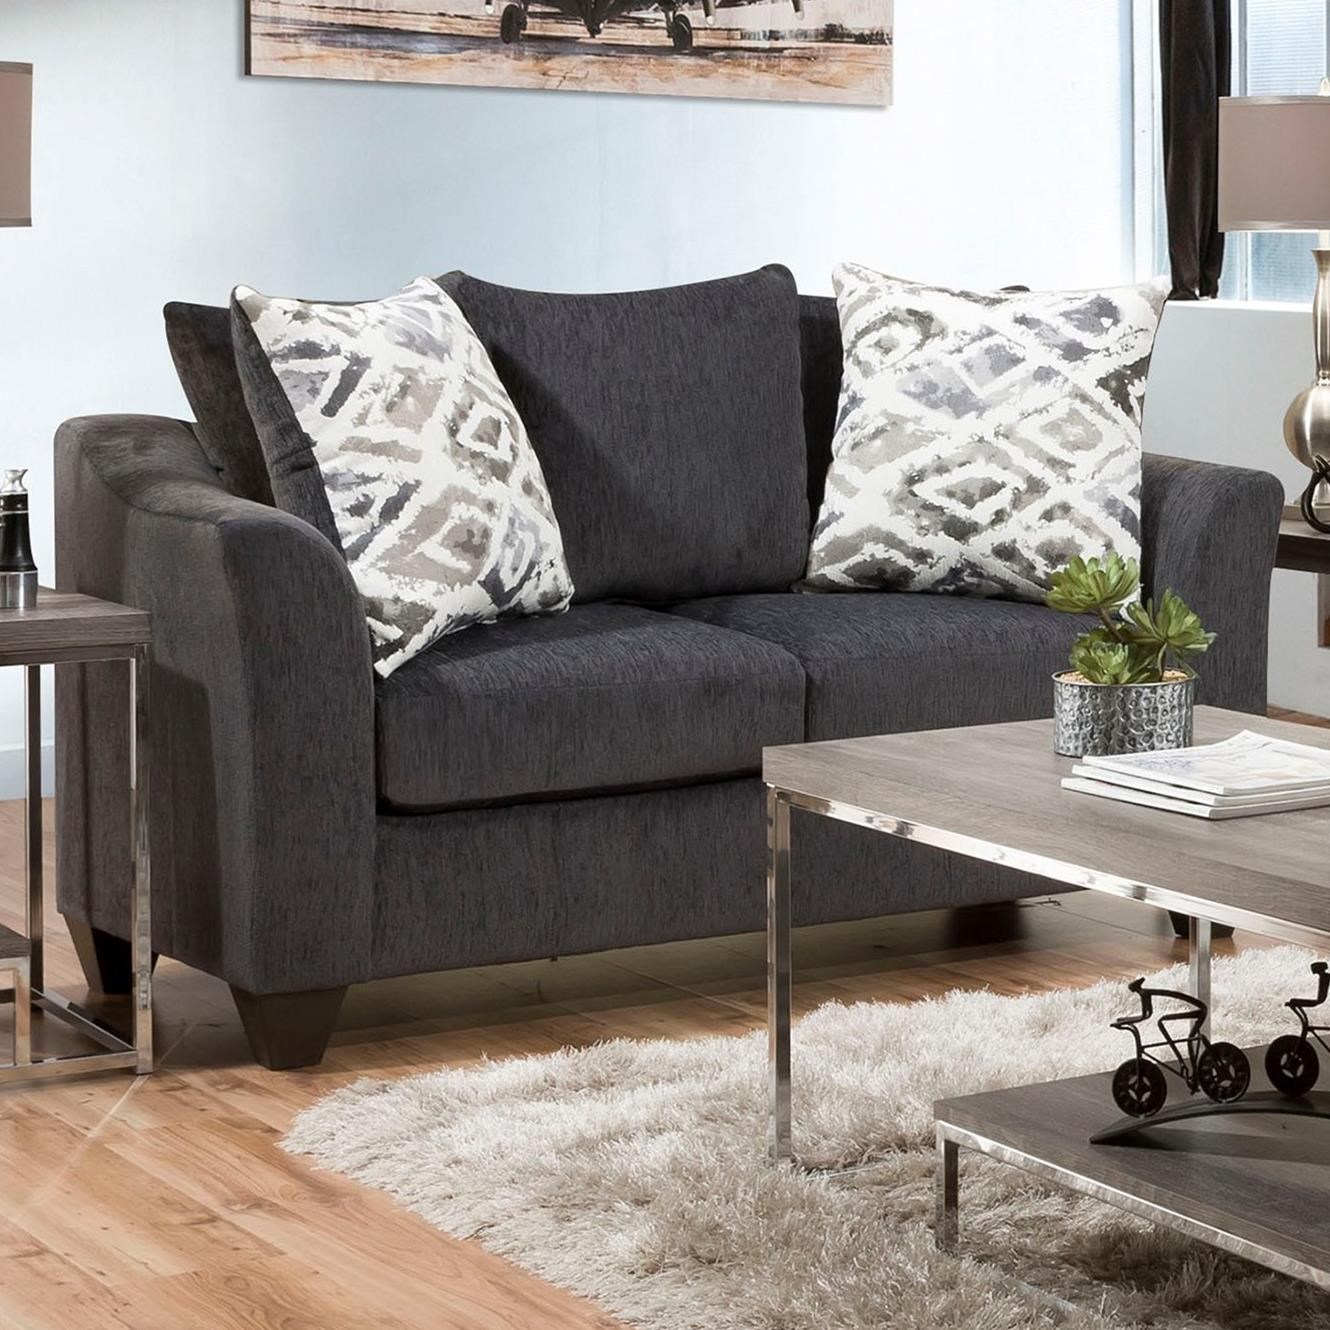 1370 Loveseat by Peak Living at Prime Brothers Furniture